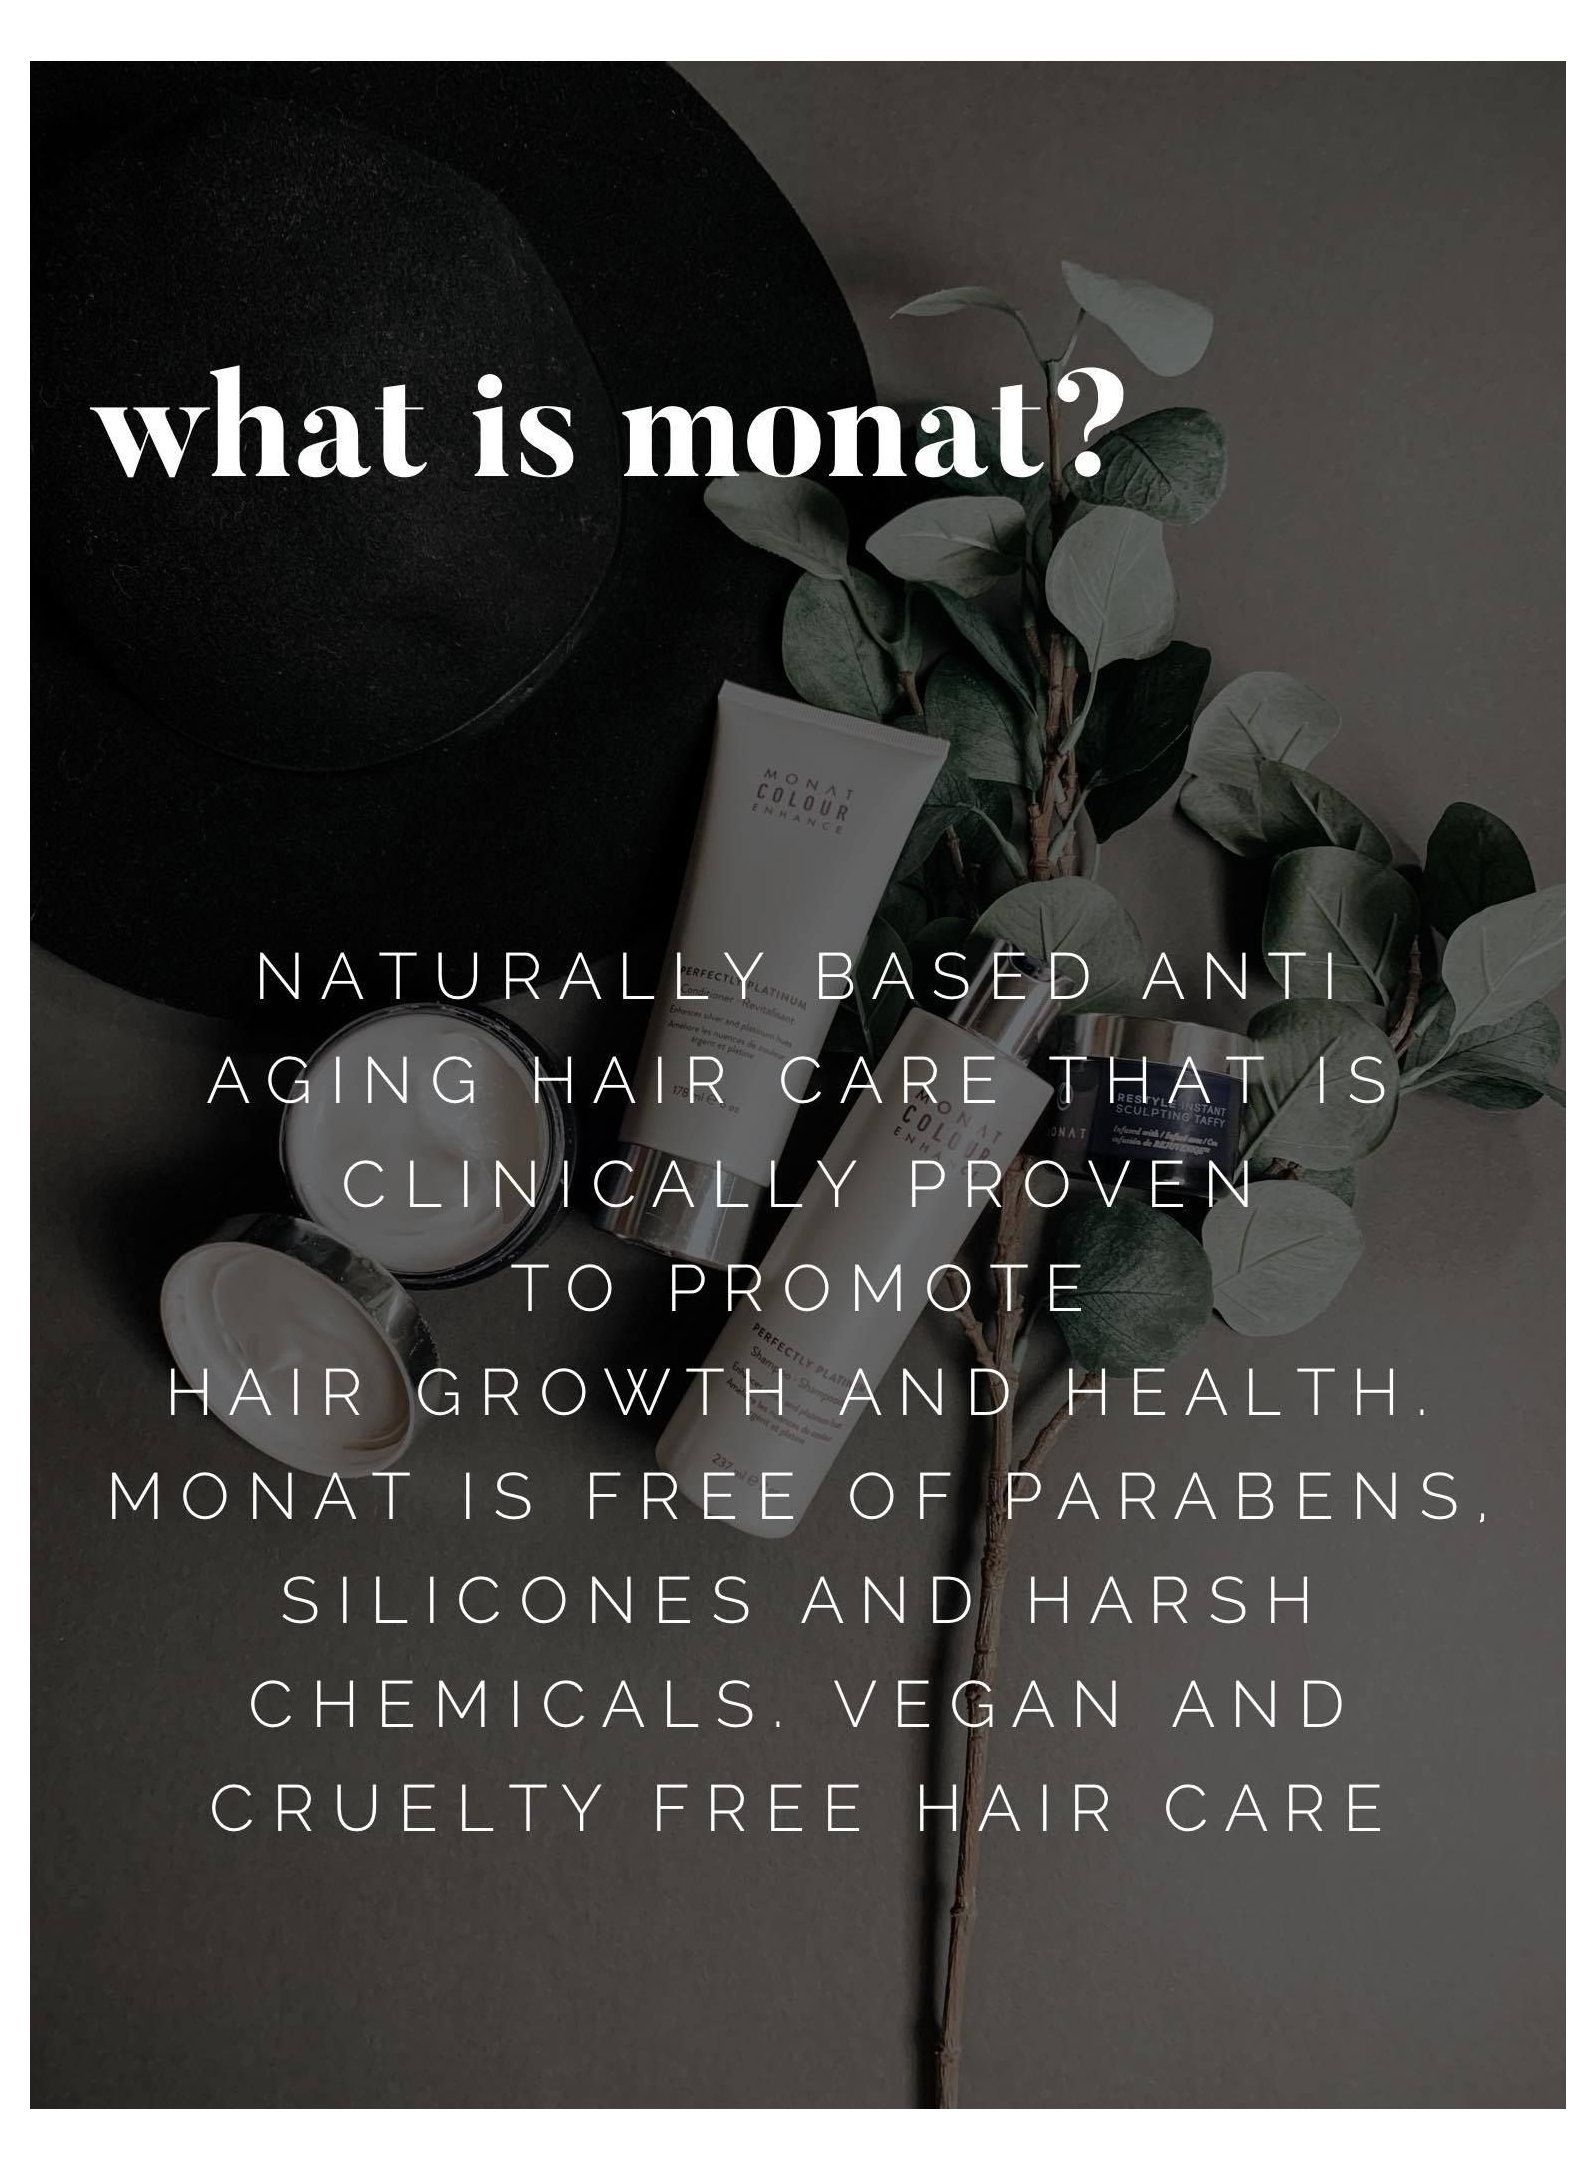 Login monat hair care photos What is Monat? Naturally